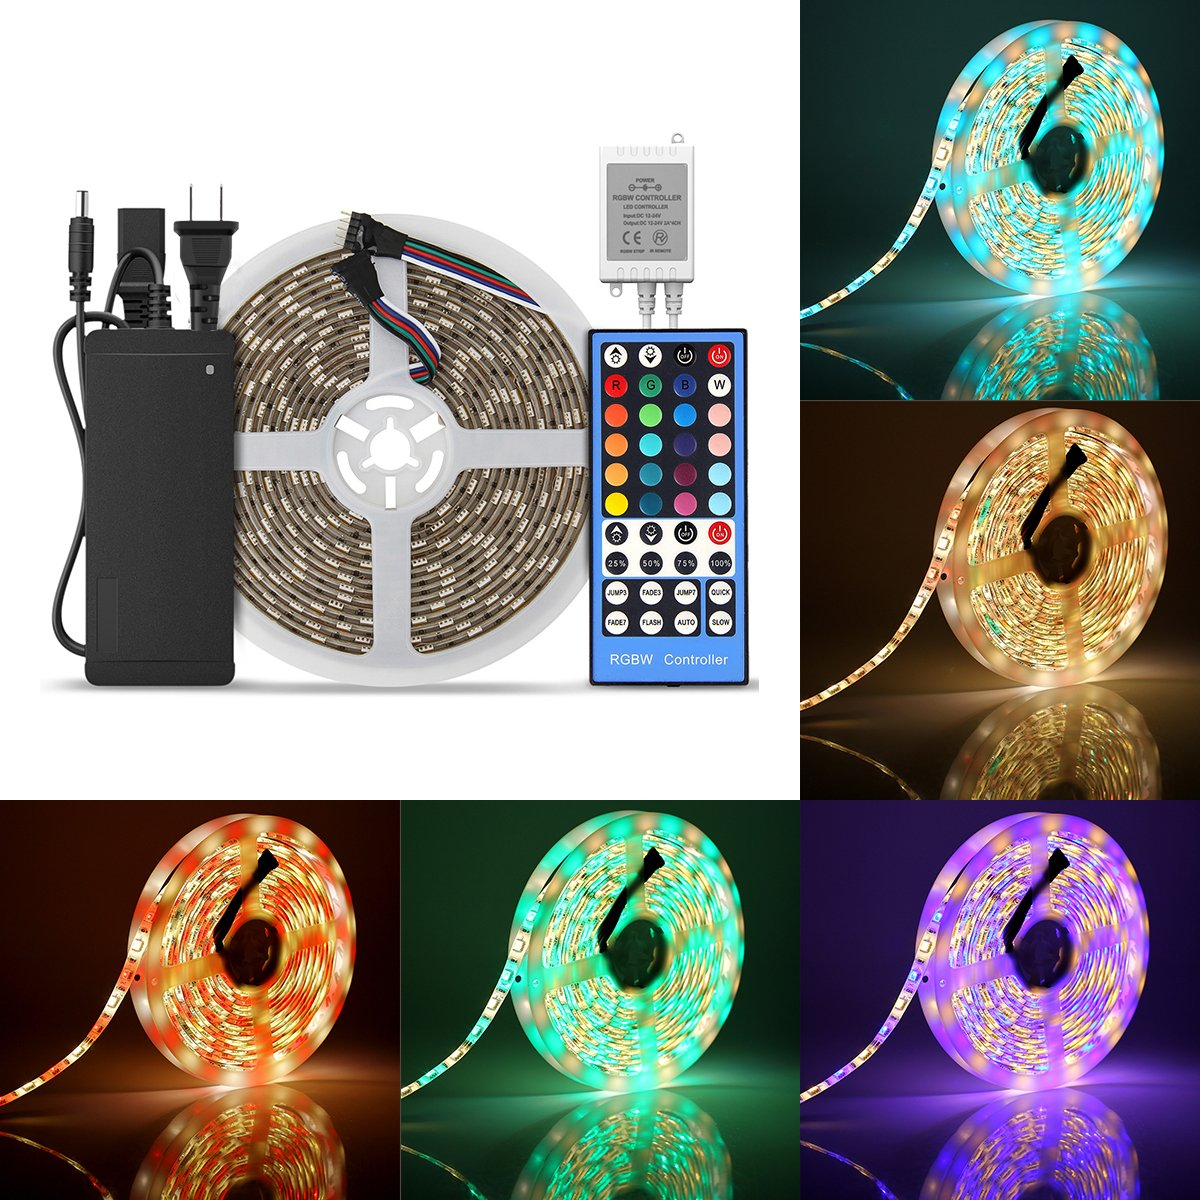 SUPERNIGHT LED Strip Waterproof, 16.4ft 300LEDS RGBW Rope Lighting, RGB + Warm White Mixed Color Dimmable Tape with 5 pin Remote Controller and 12V Power Adapter for Room, TV Backlight